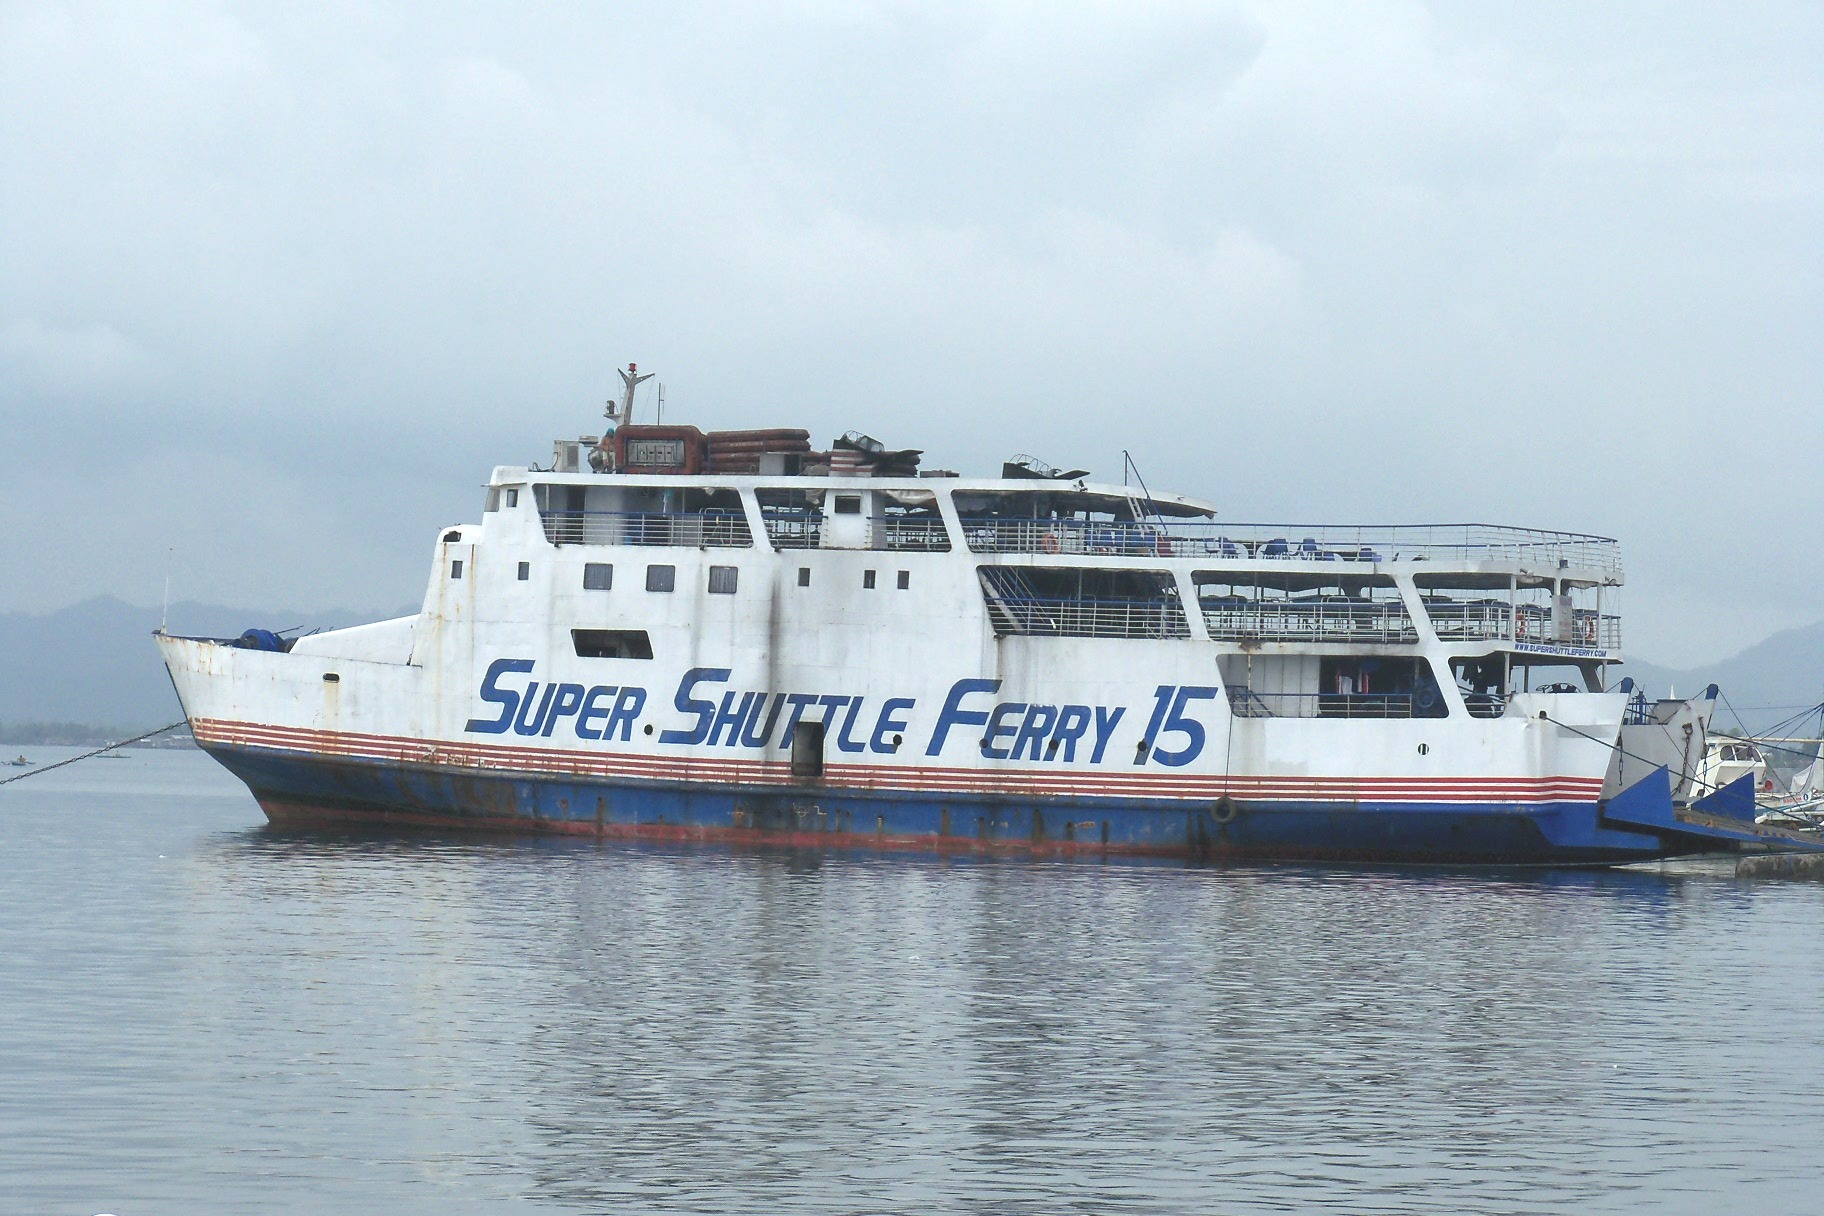 Super Shuttle Ferry 15